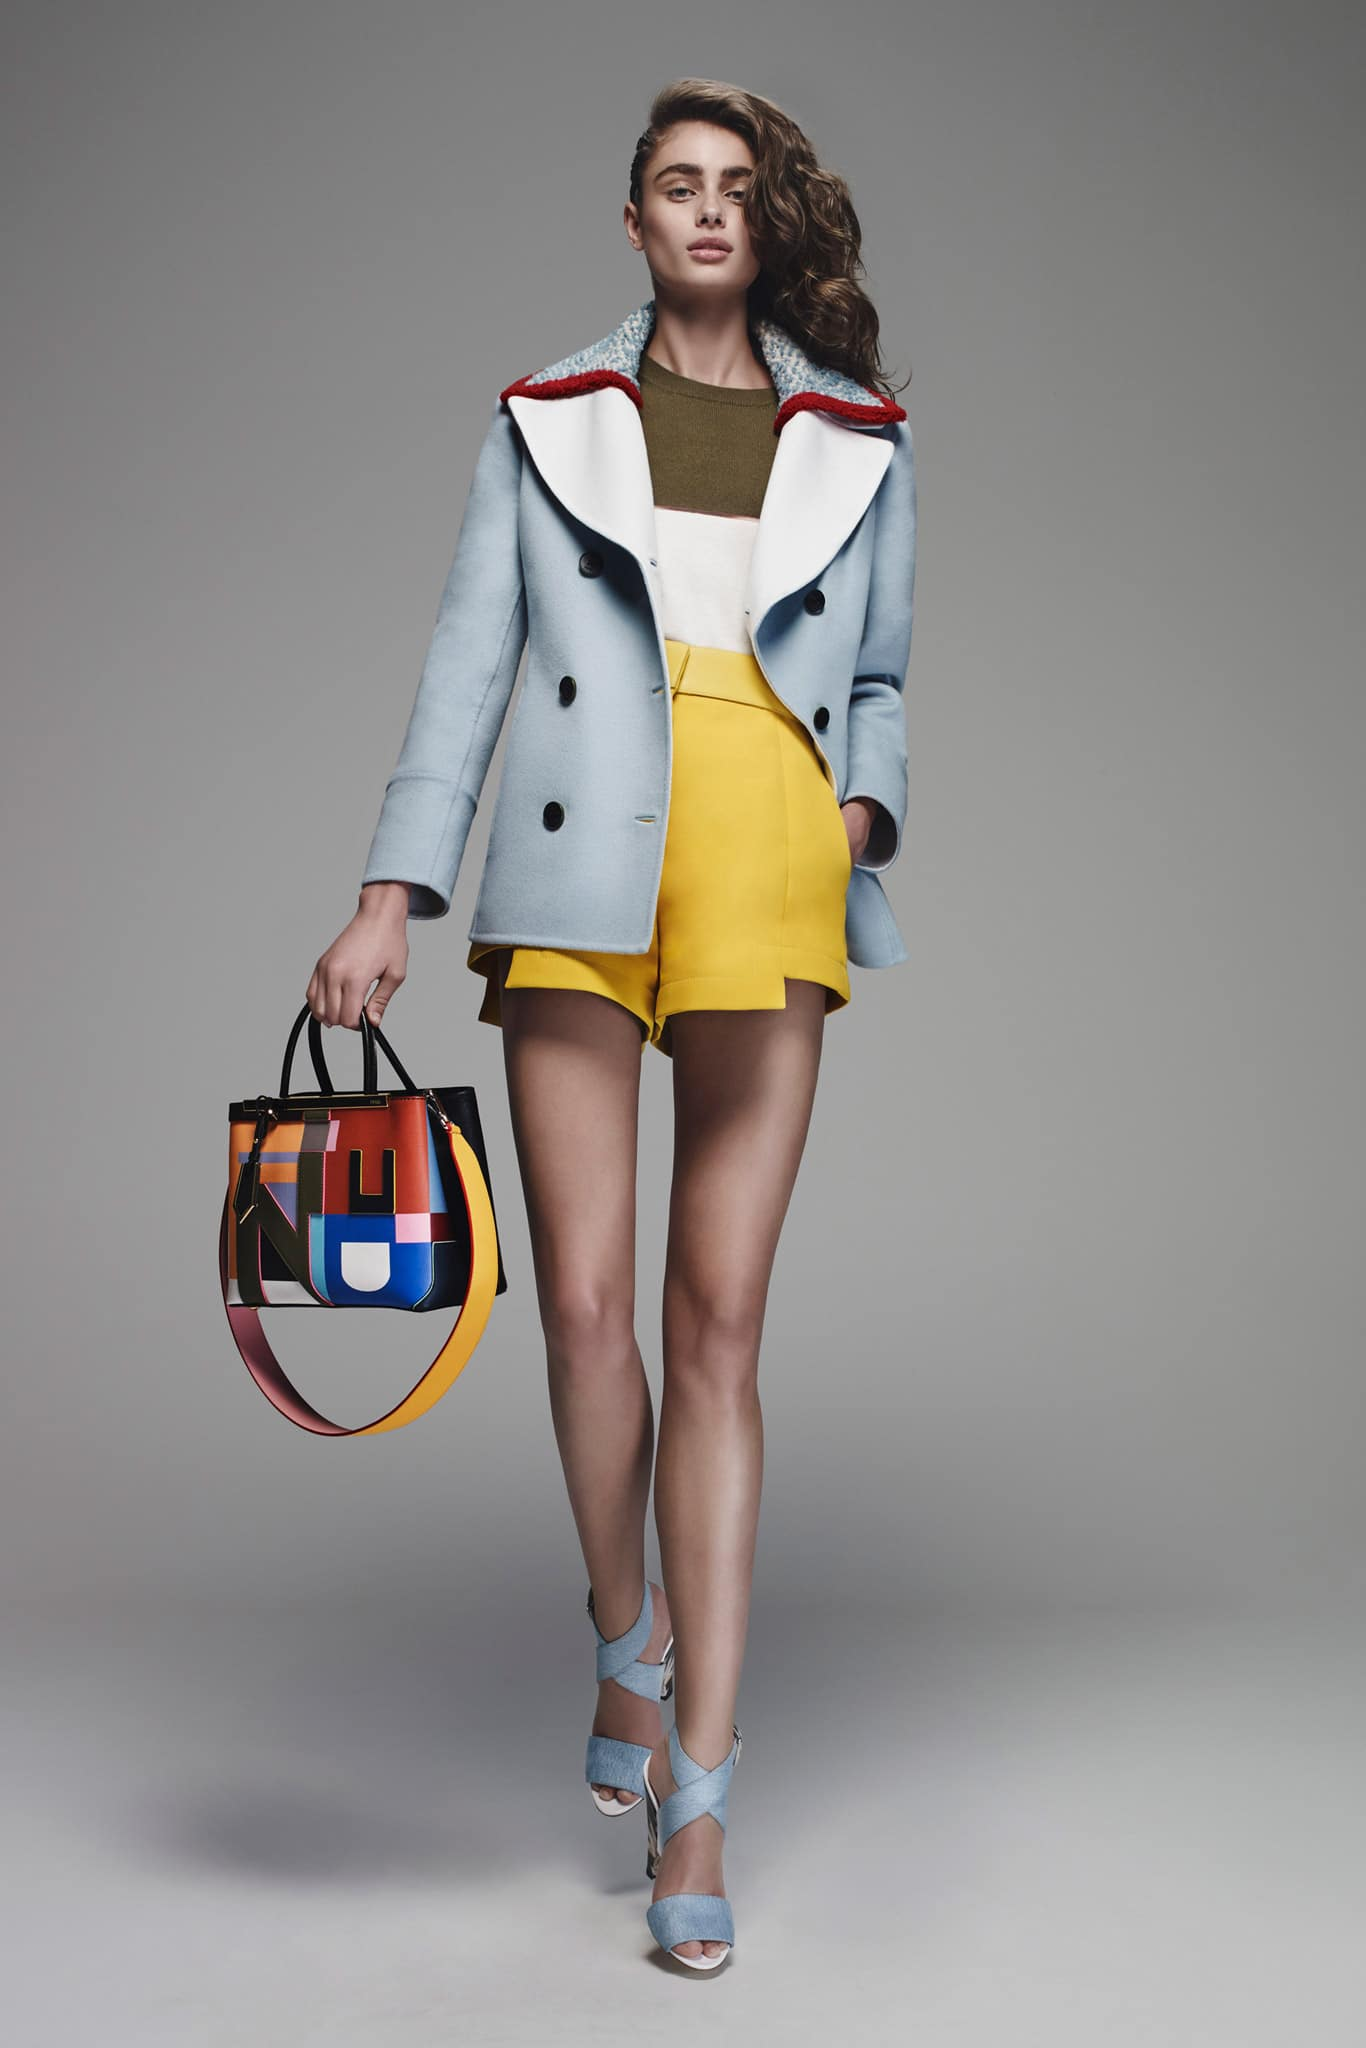 fendi resort 2016 bag collection featuring micro backpack